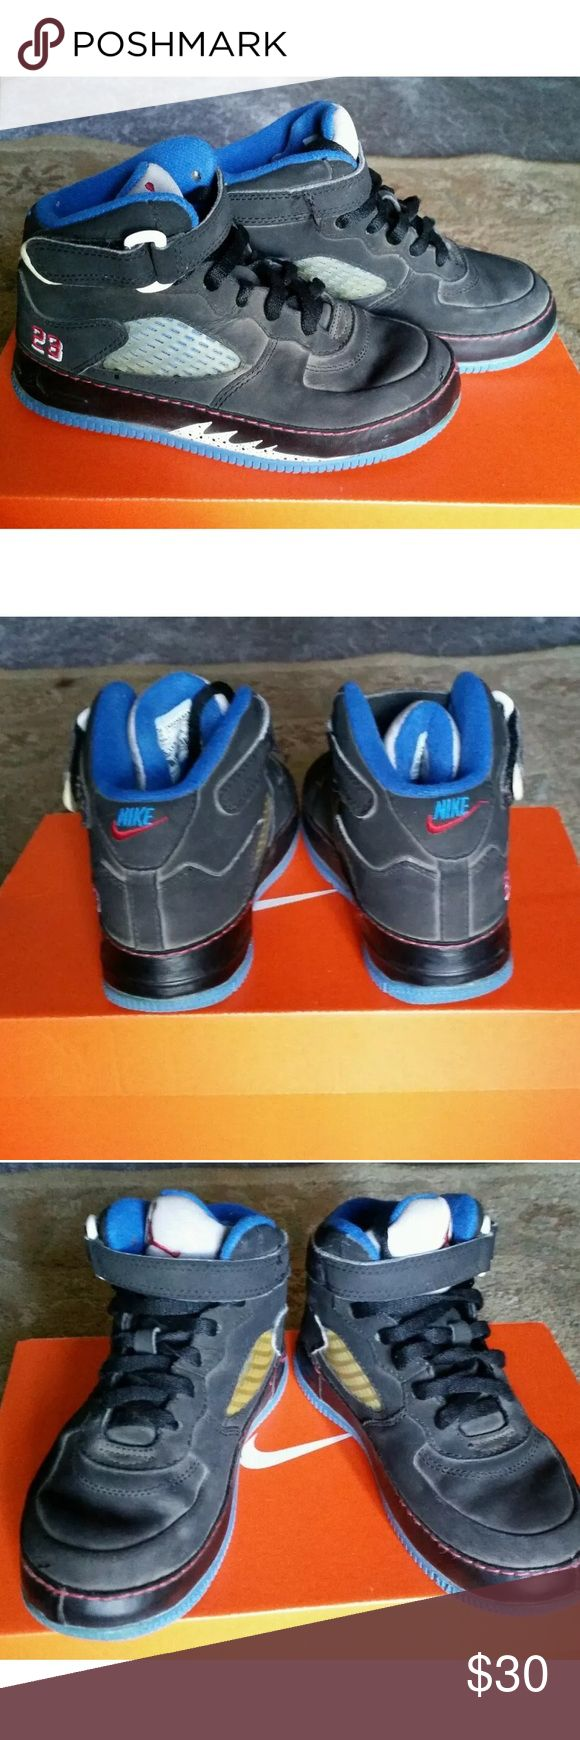 Kids Jordan Retro 5 size 12c Black and blue. Kids shoes. Minor scuff. Good condition overall. Jordan Shoes